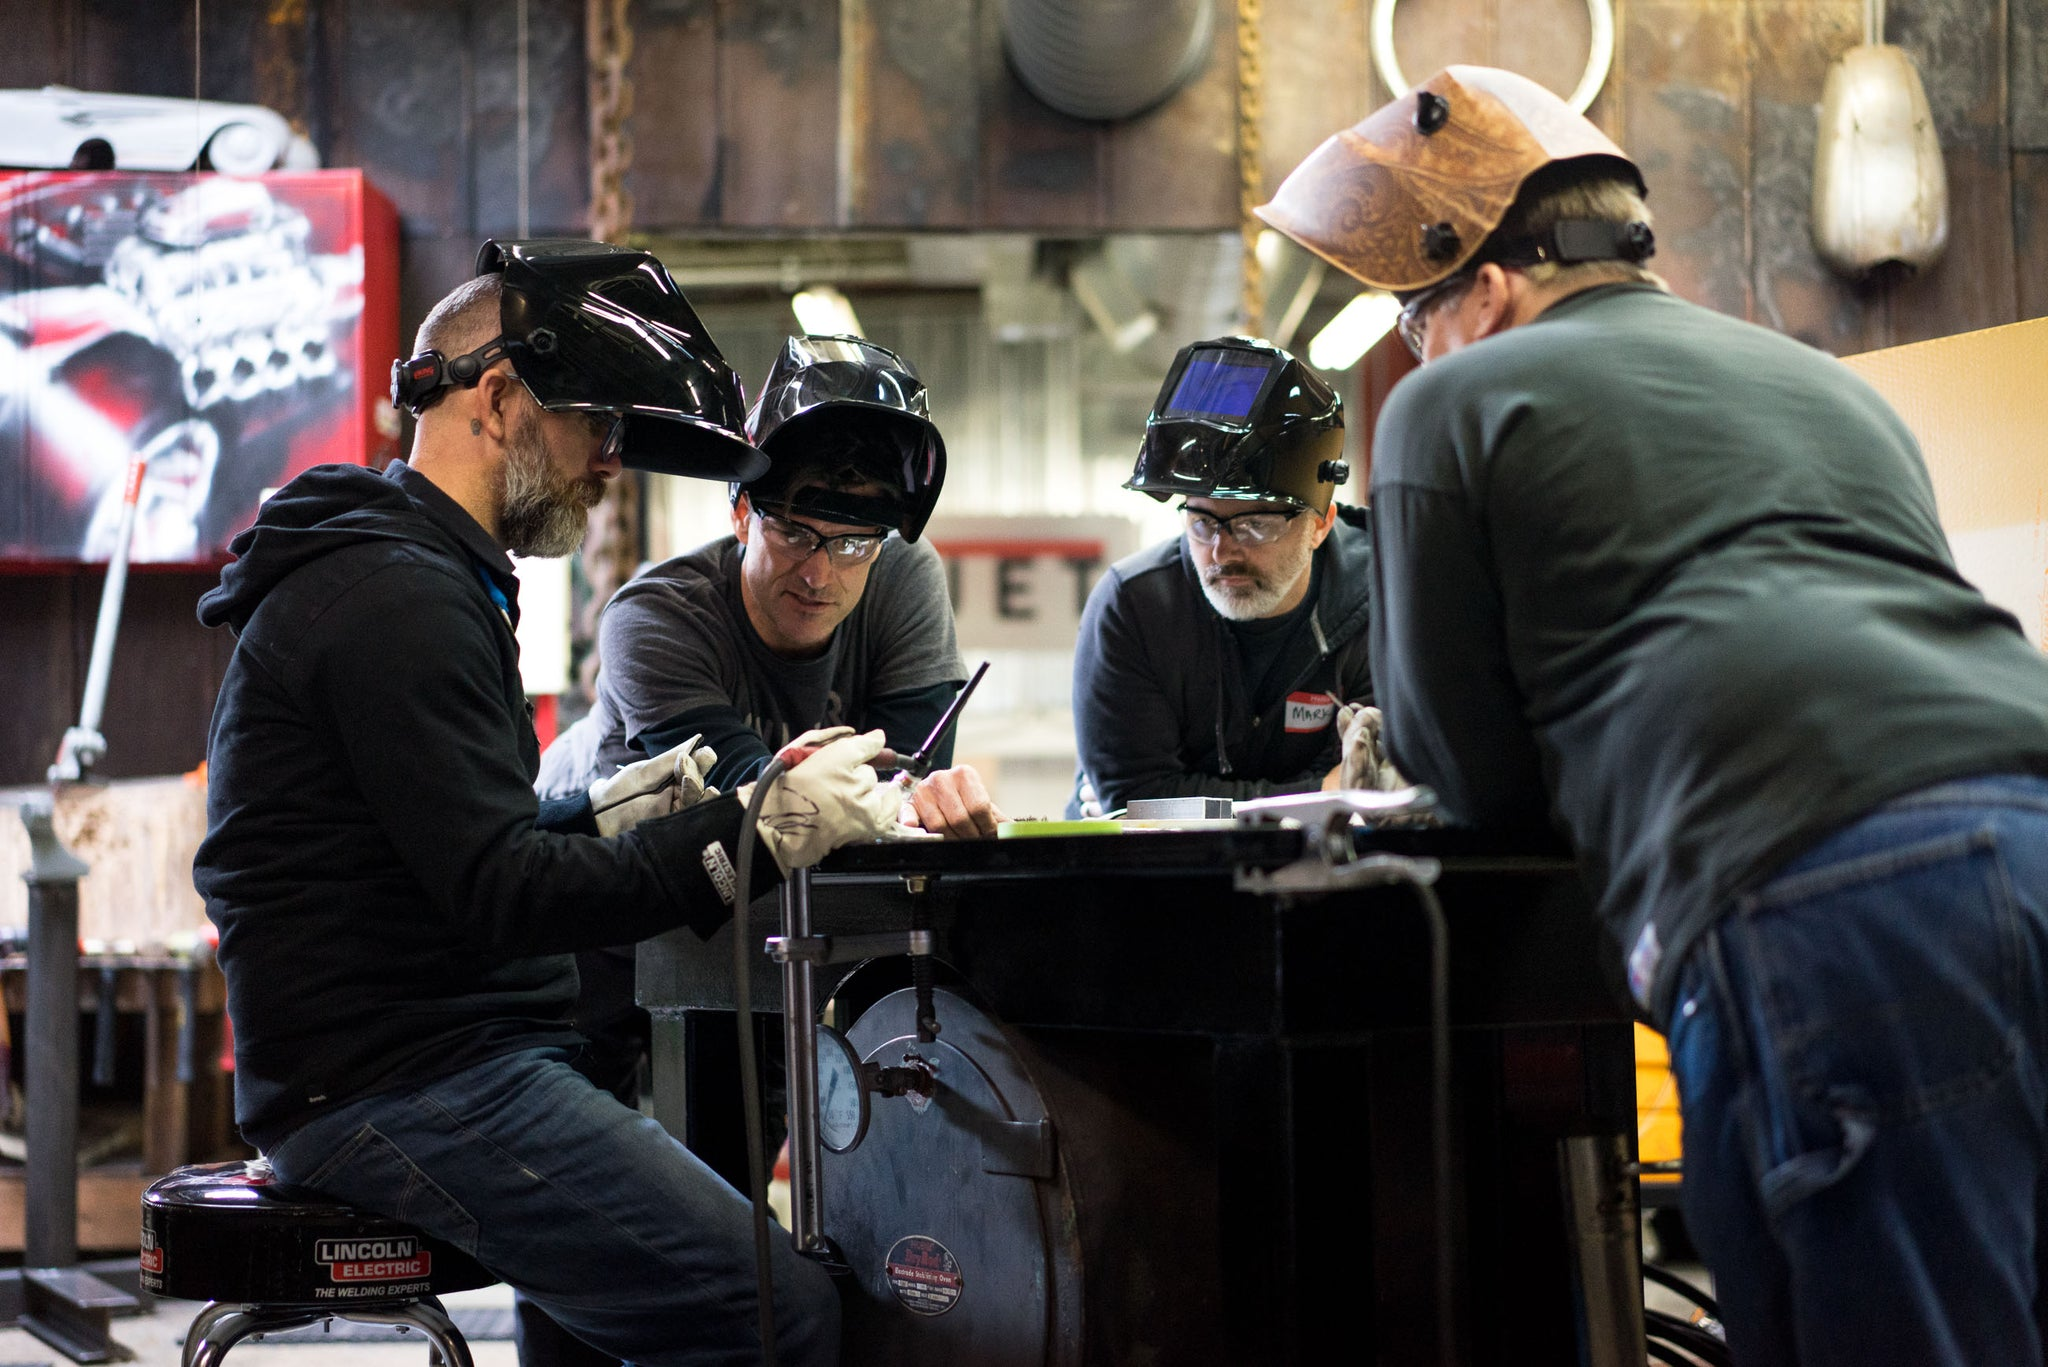 Fuller Moto | Full-Bore LIVE! Welding Seminar Attendees Learn to Weld and Share Stories